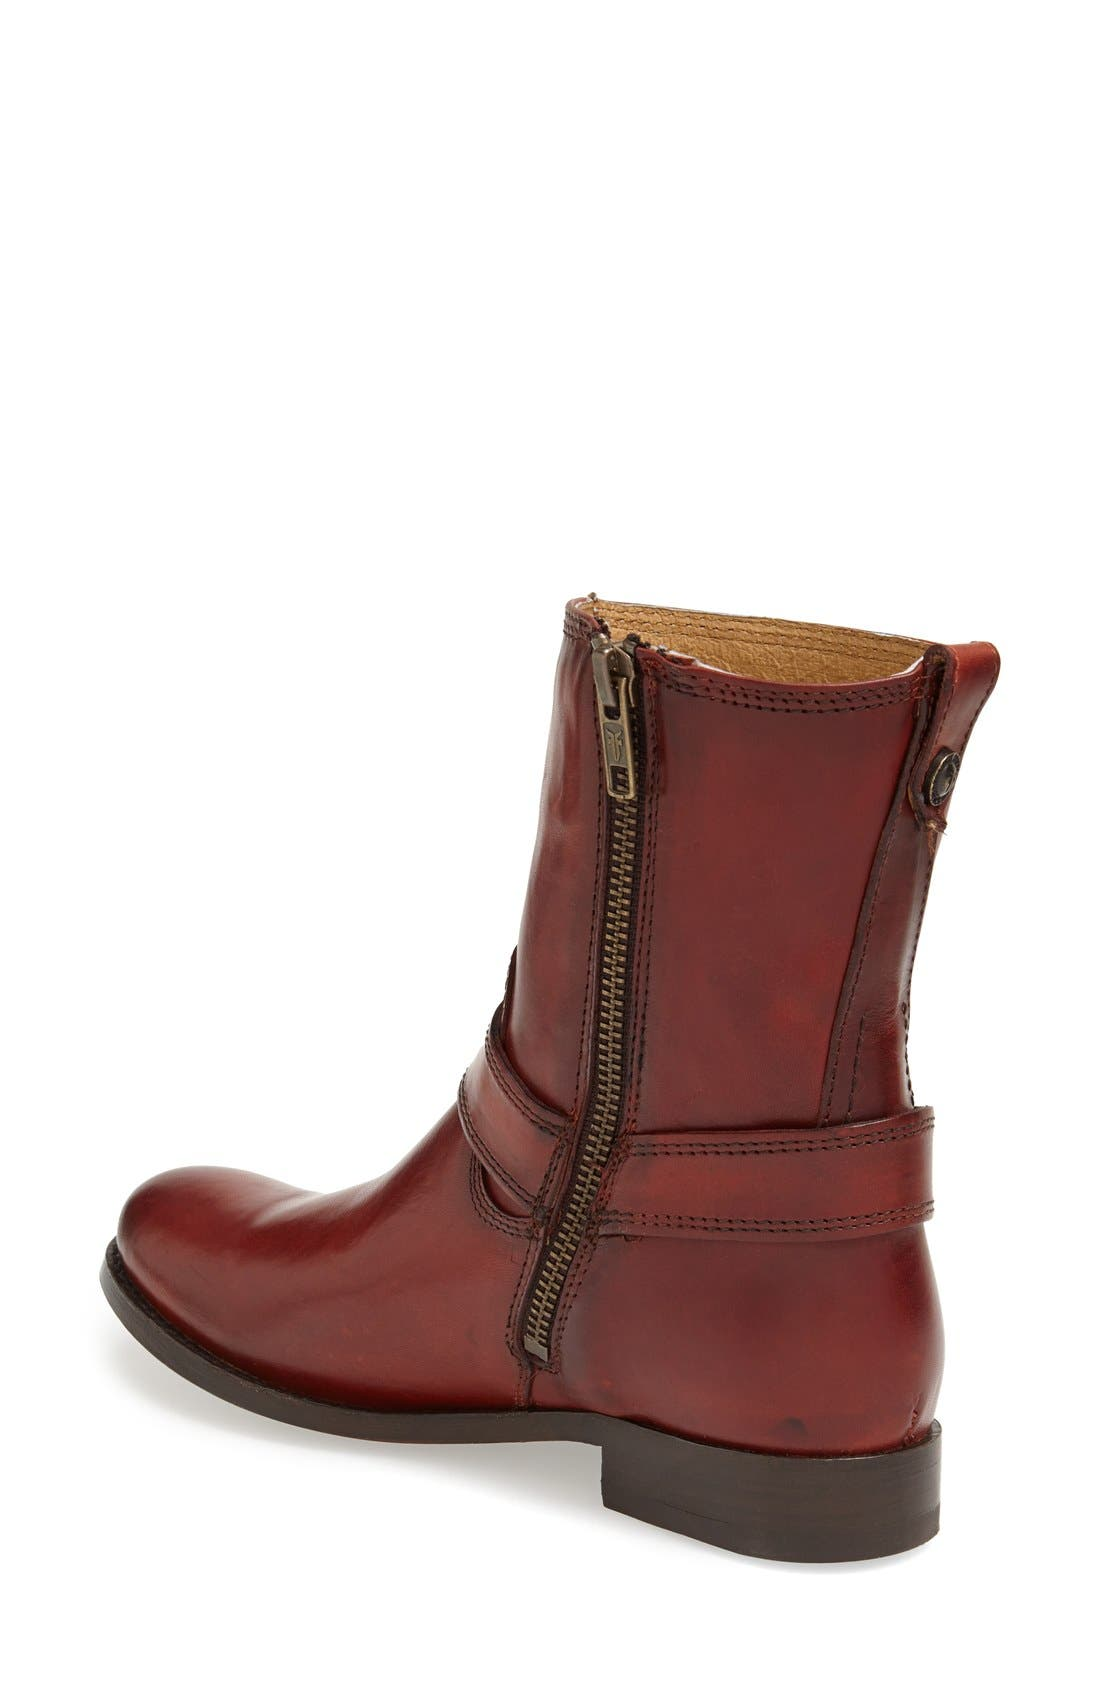 Alternate Image 2  - Frye 'Melissa' Harness Boot (Women)